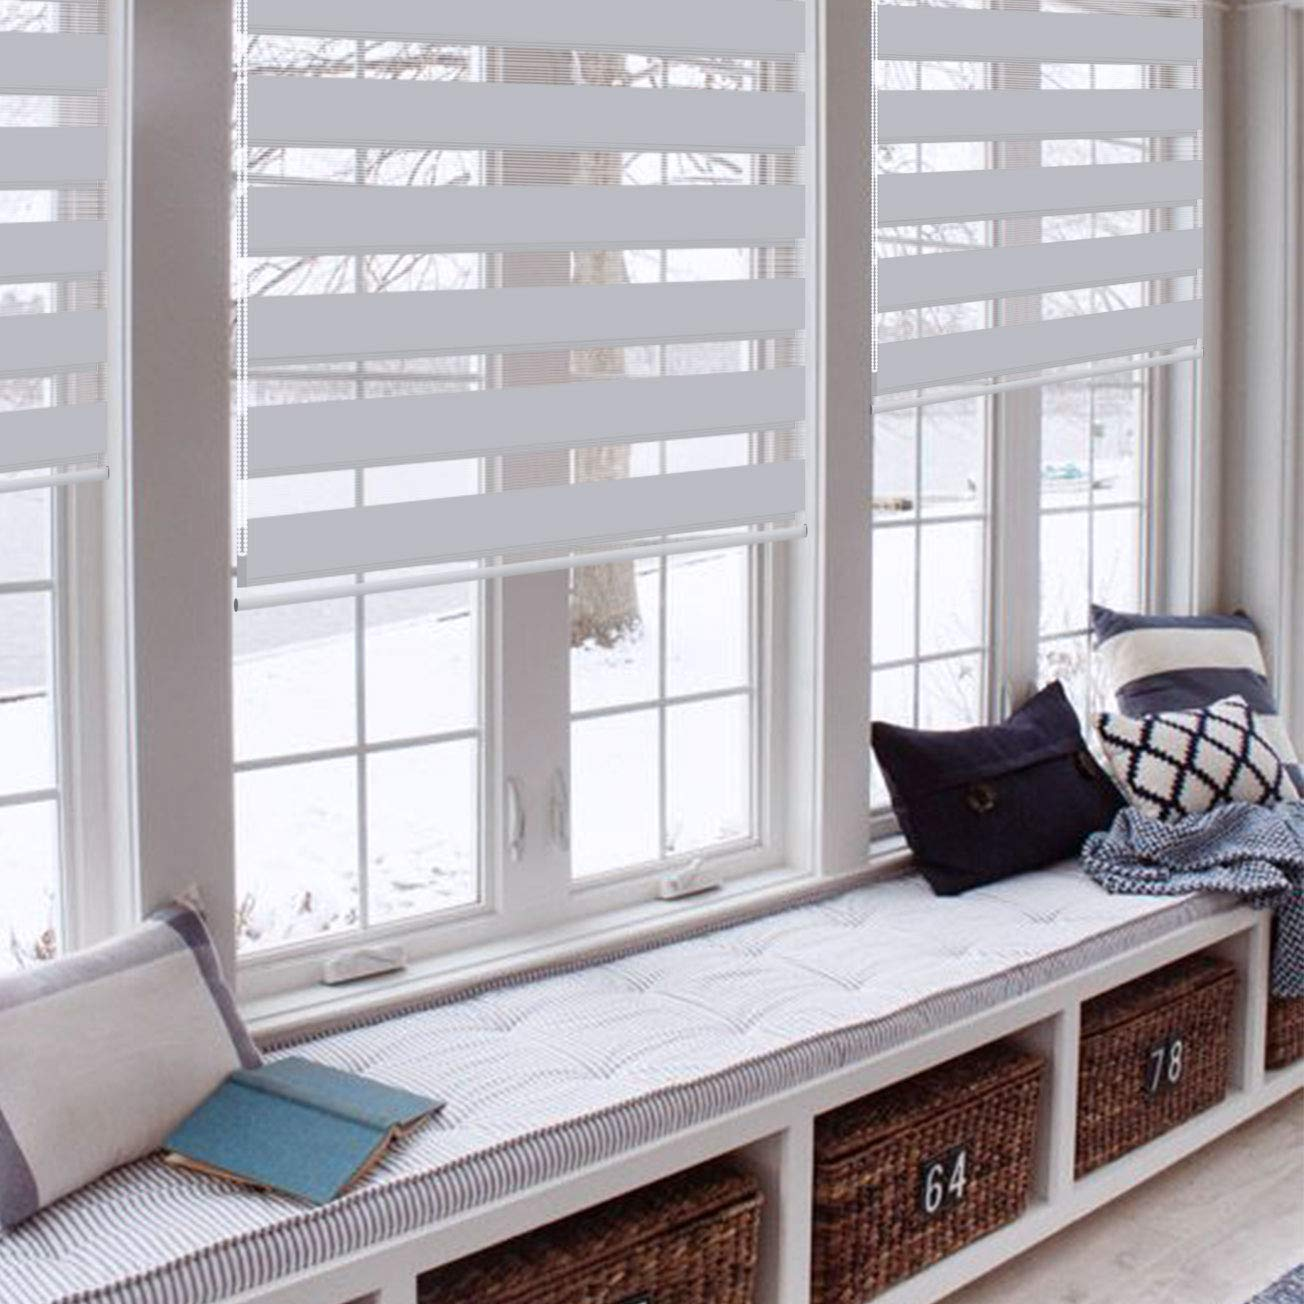 Day and Night Blinds 100/% Waterproof Fabric Easy to Install Blackout Vision Blinds Curtains for Windows with Install Accessories,21.7 x 59,Grey Horizontal Window Shade Roller Blind